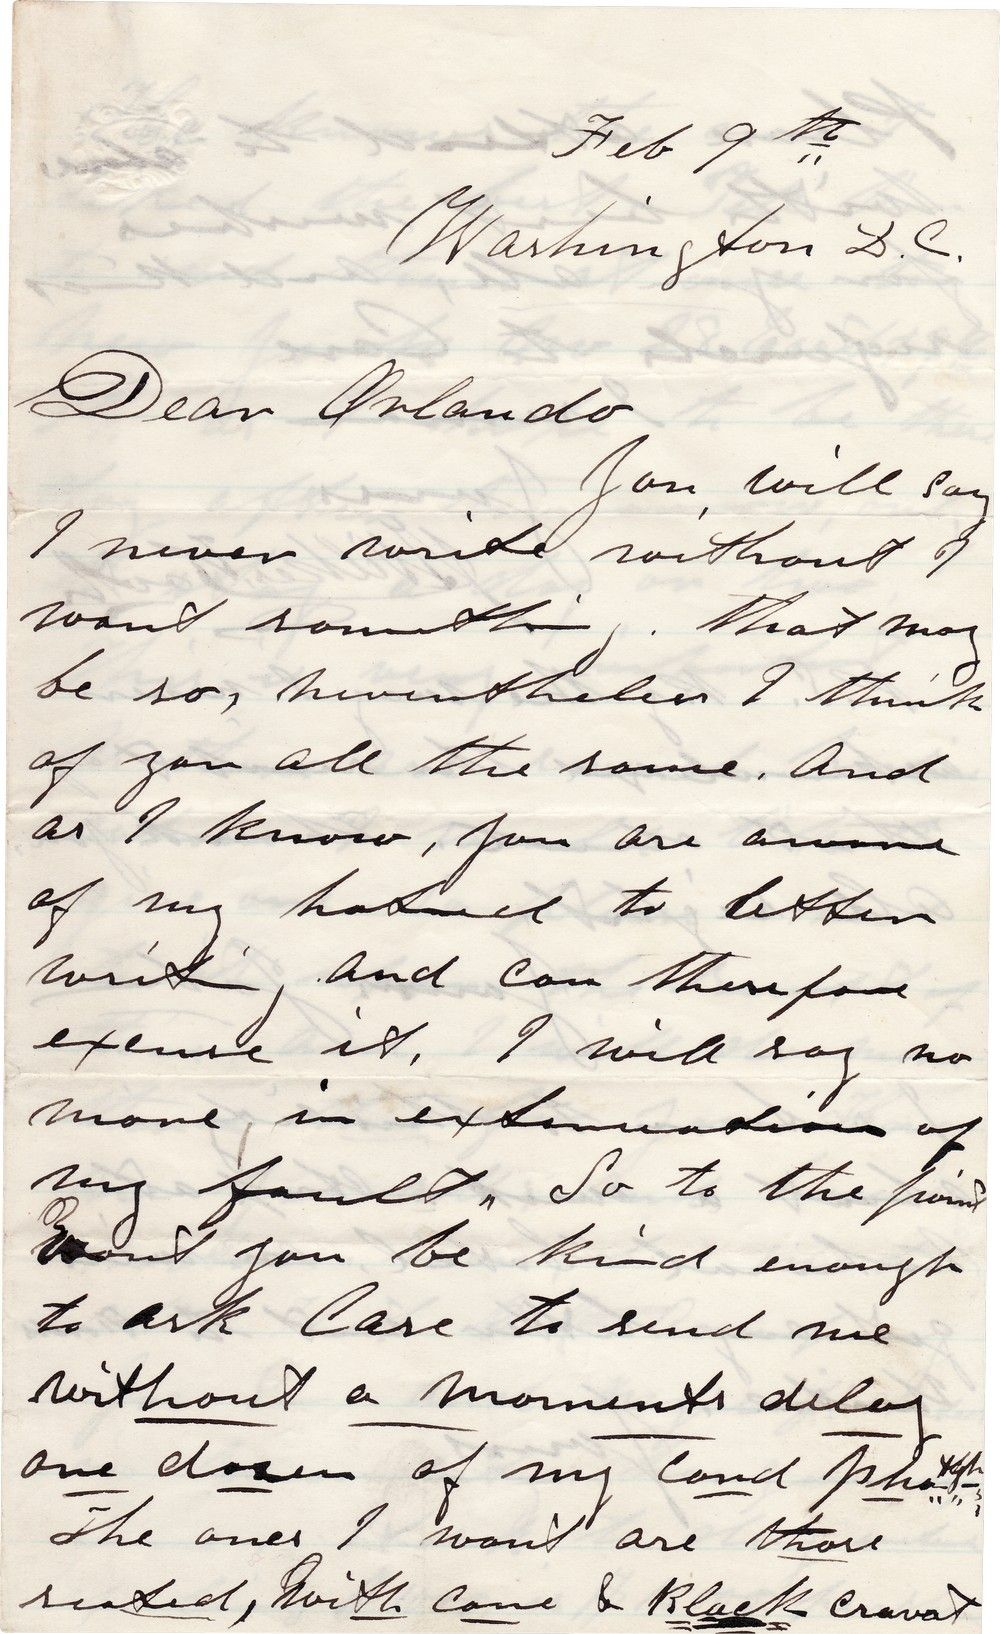 John Wilkes Booth Letter, Written Eight Weeks Before Lincoln's Assassination, Mentions Ford's Theatre